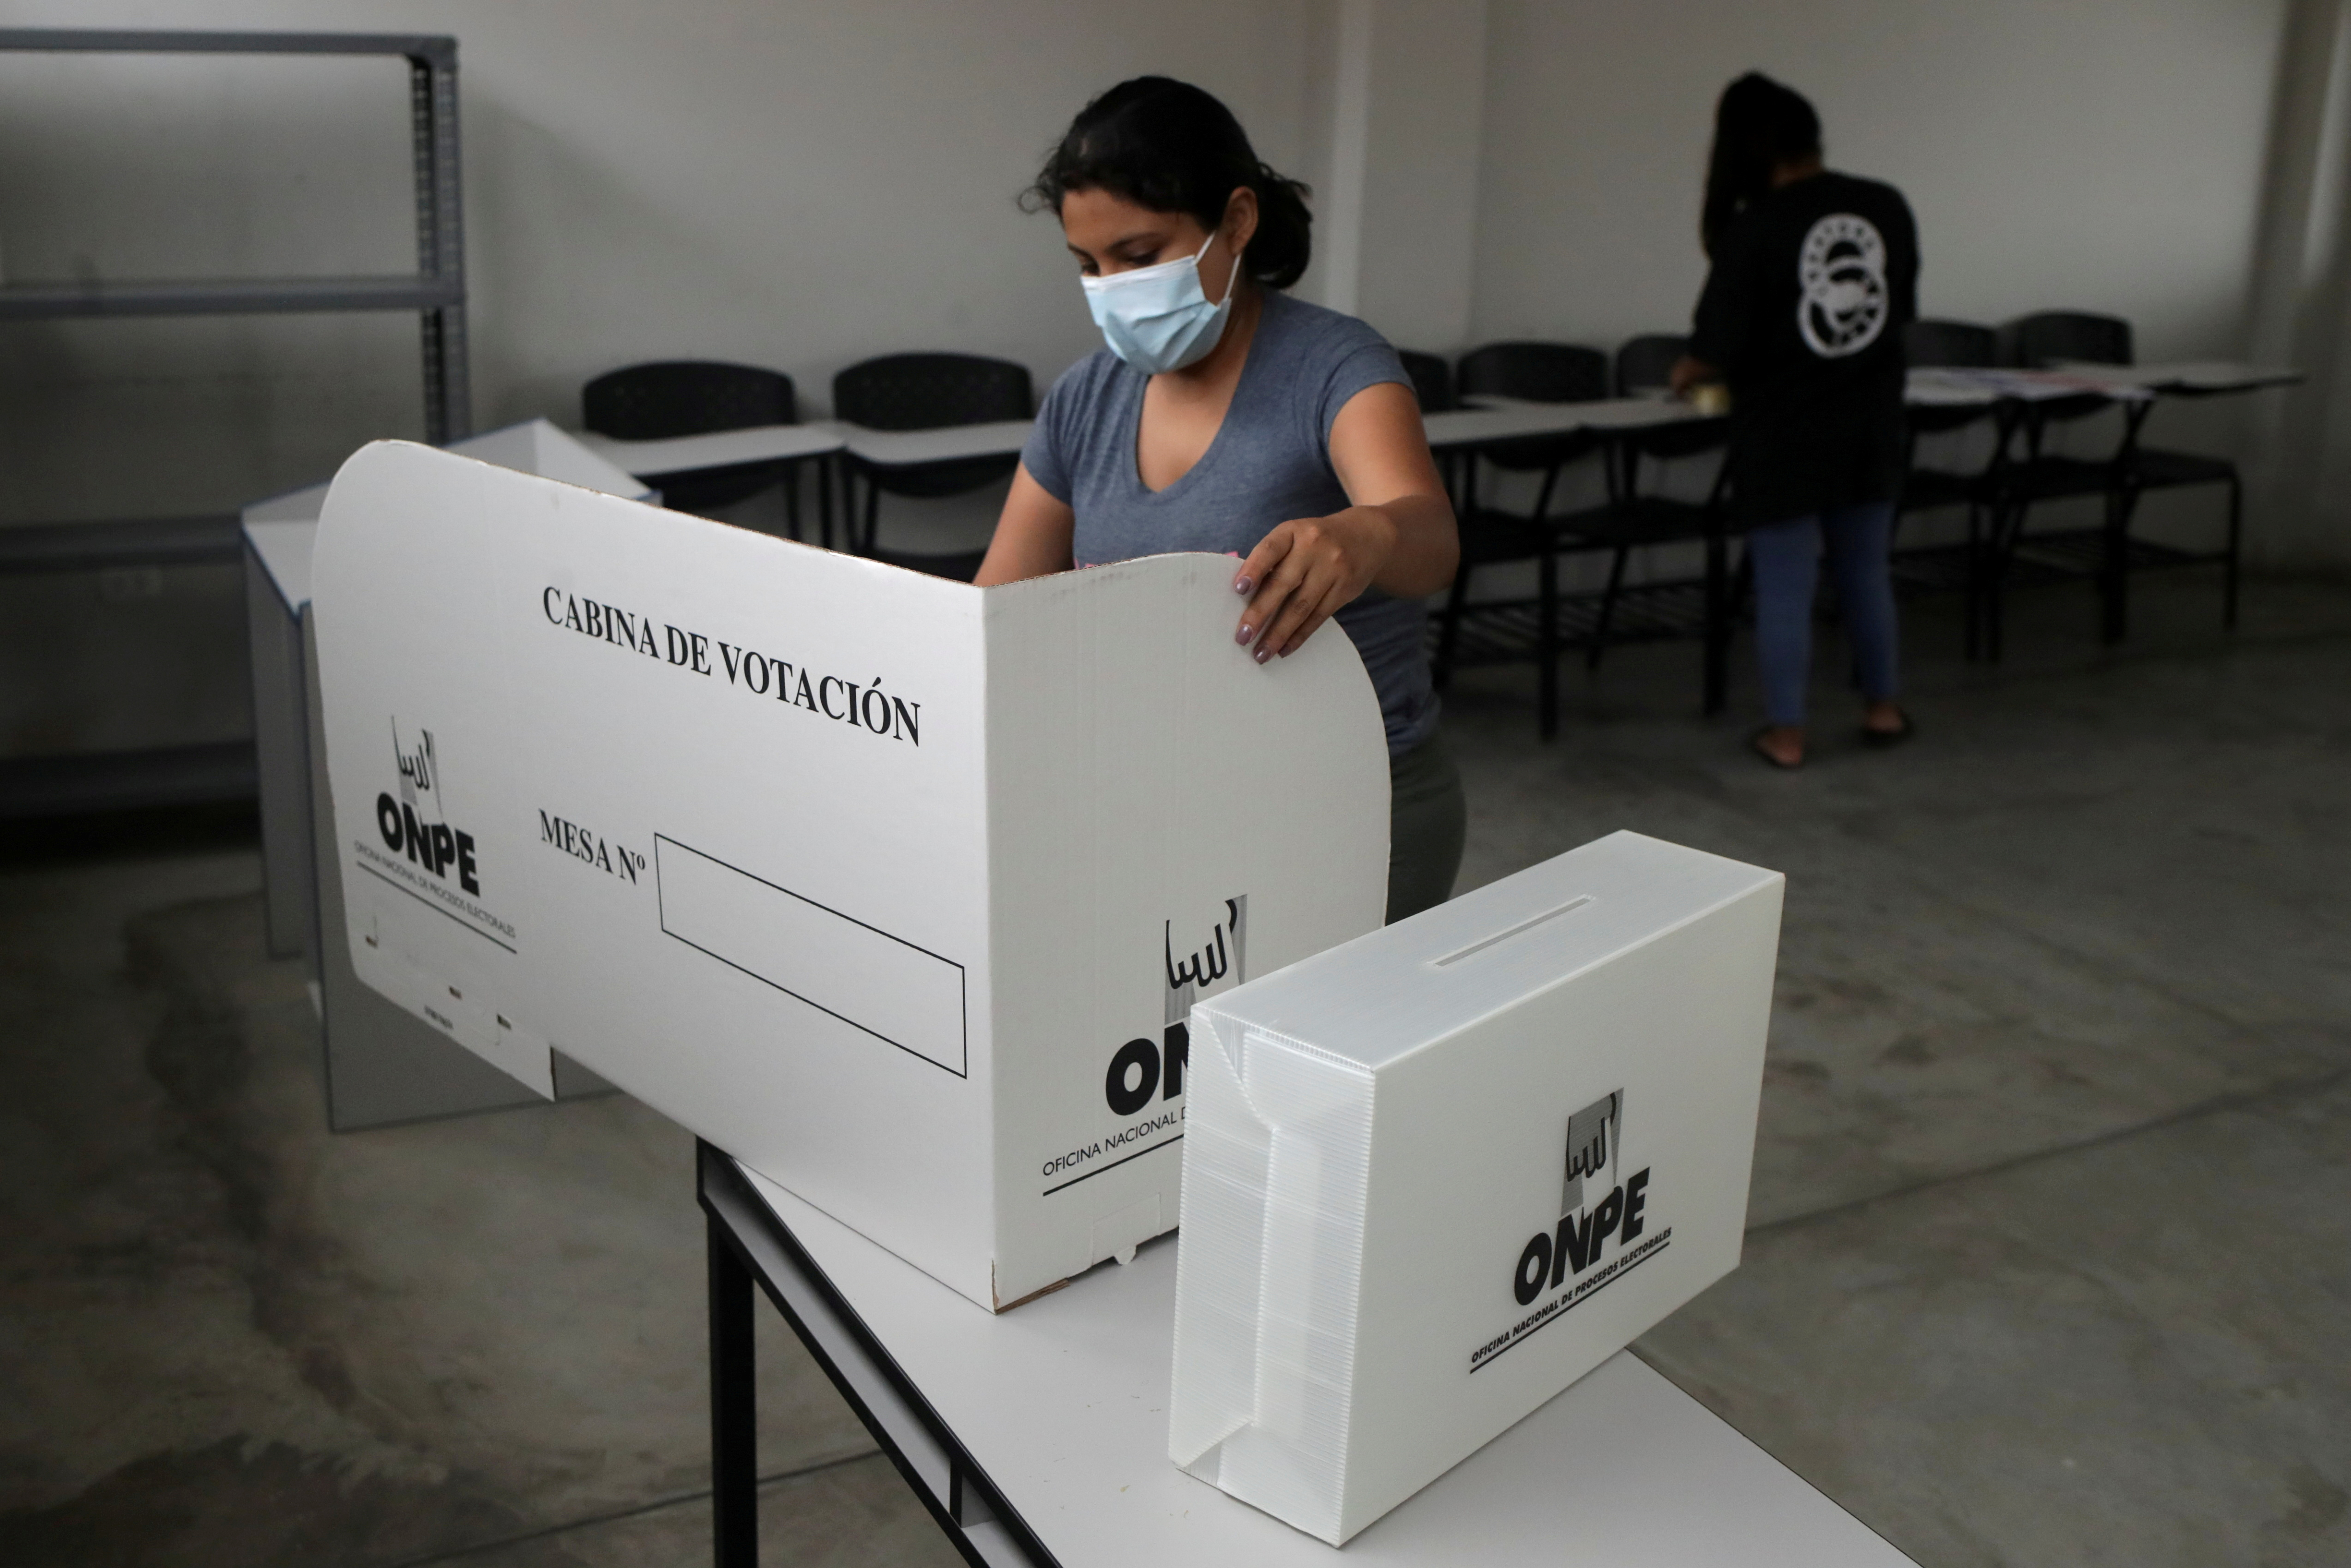 A member of electoral personnel sets up a voting booth, the day ahead of the first round of presidential and parliamentary elections, at a polling station in San Juan Miraflores neighborhood in Lima, Peru, April 10, 2021. REUTERS/Henry Romero/File Photo